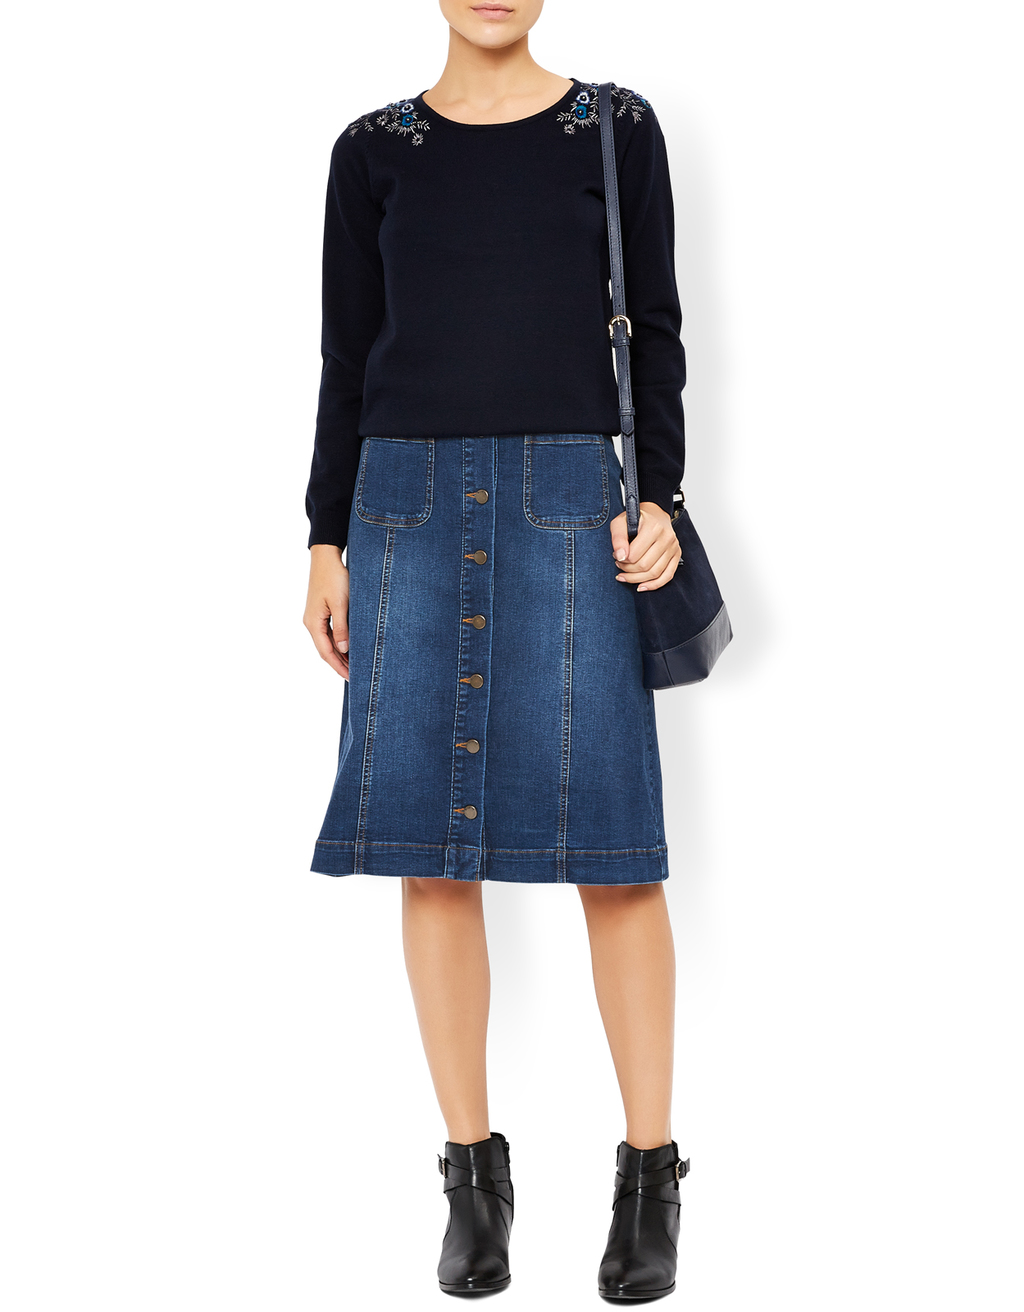 Dita Denim Skirt - pattern: plain; style: straight; fit: body skimming; waist: mid/regular rise; predominant colour: denim; occasions: casual, creative work; length: on the knee; fibres: cotton - 100%; texture group: denim; pattern type: fabric; wardrobe: basic; season: a/w 2016